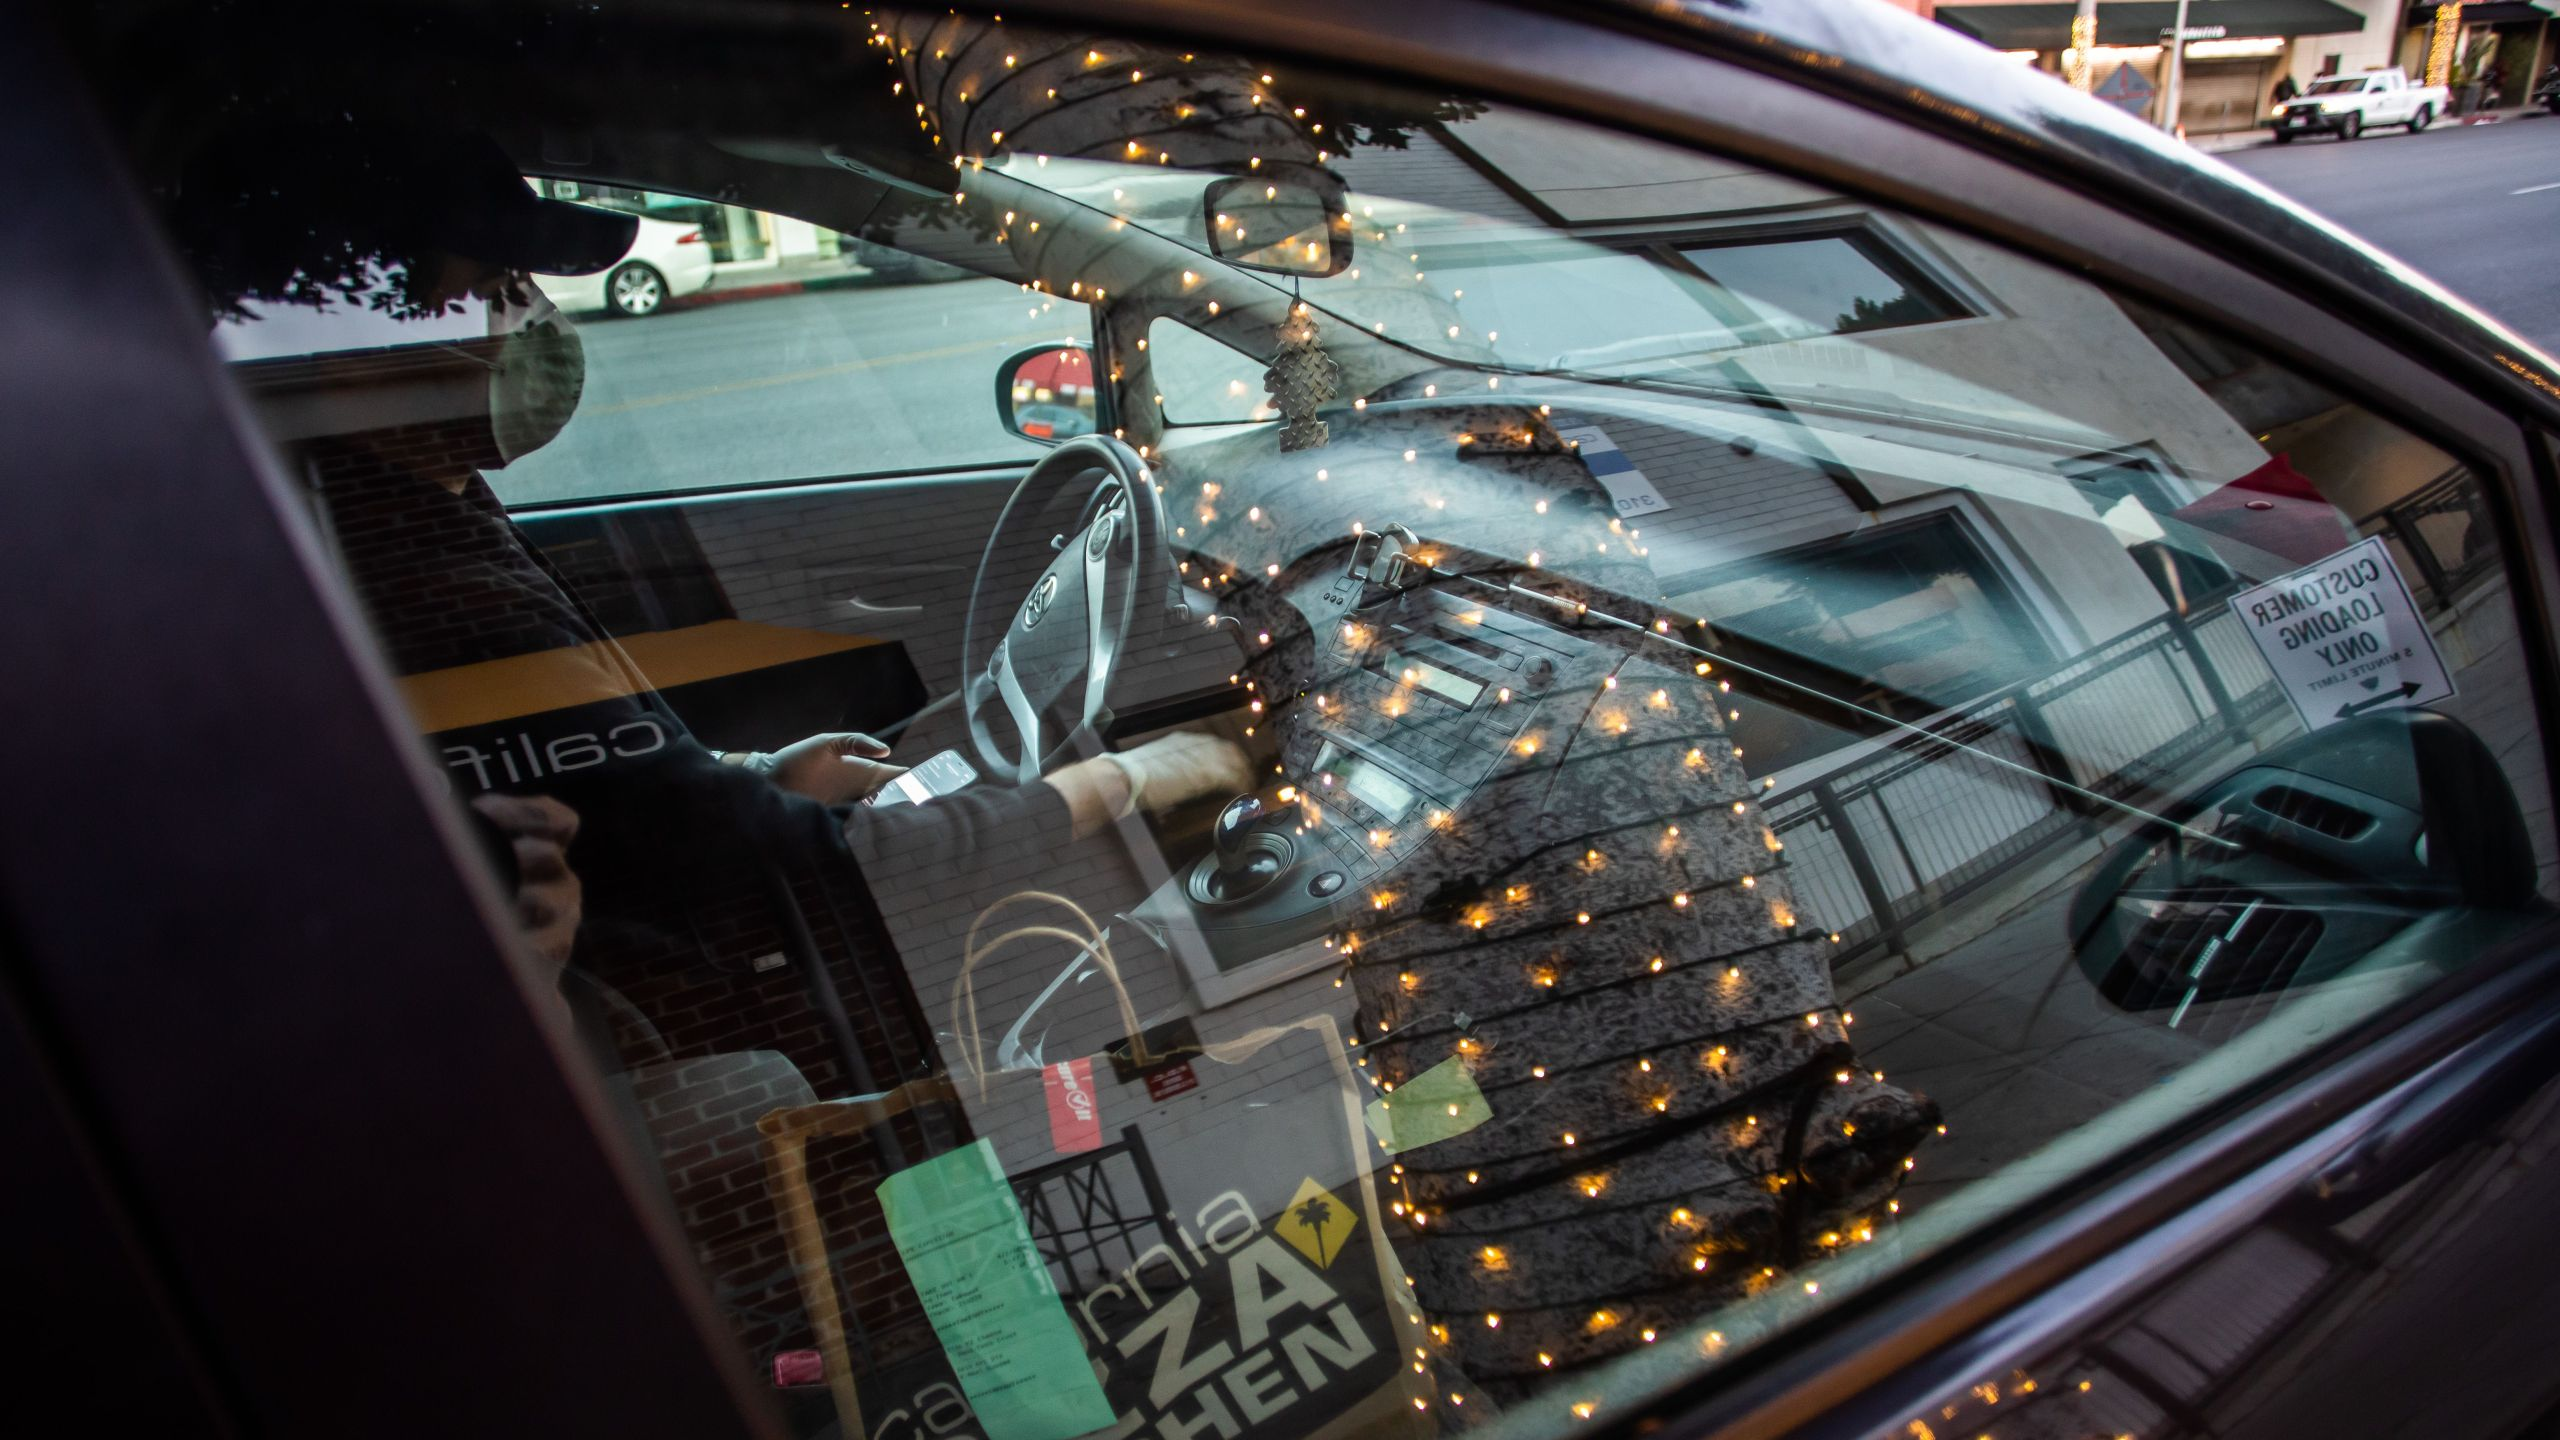 Musician Lucas Goes wears a mask as he drives to deliver food for a delivery app in Beverly Hills on April 2, 2020, after losing his job during the coronavirus outbreak. (Apu Gomes / AFP / Getty Images)